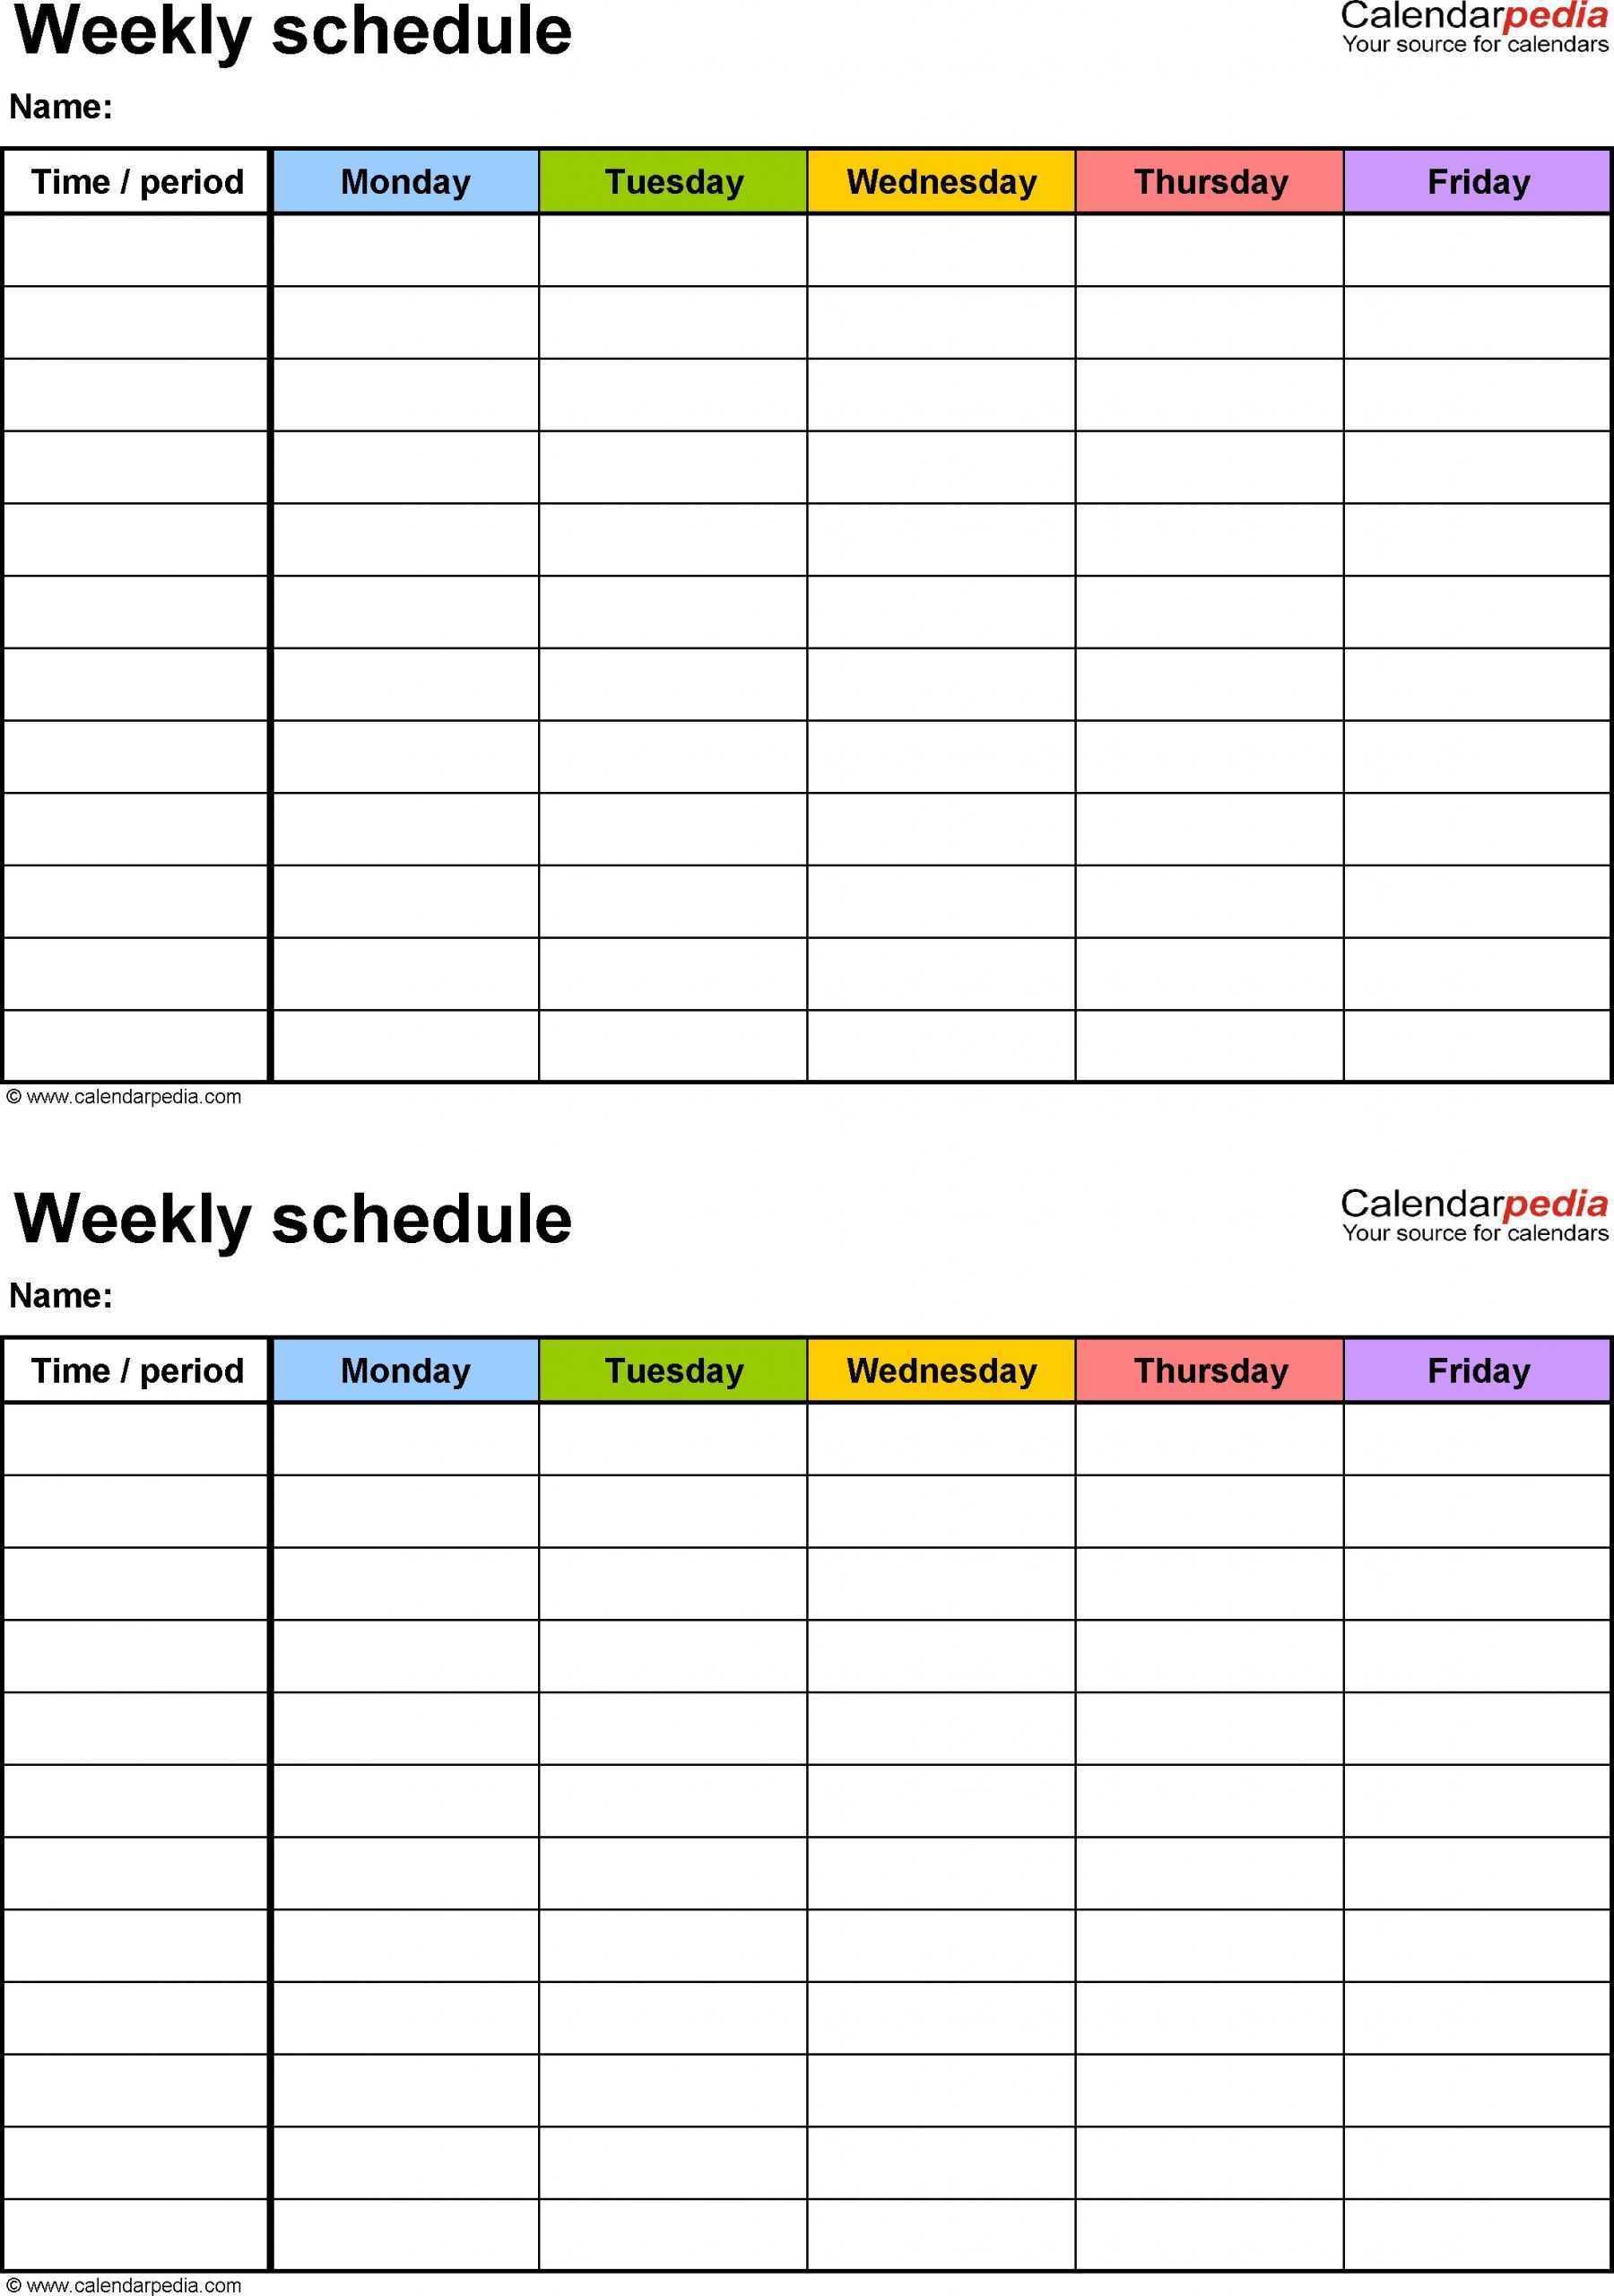 Weekly Schedule Template Pdf - Task List Templates Free Templates To Print For 2 Week Scheduling